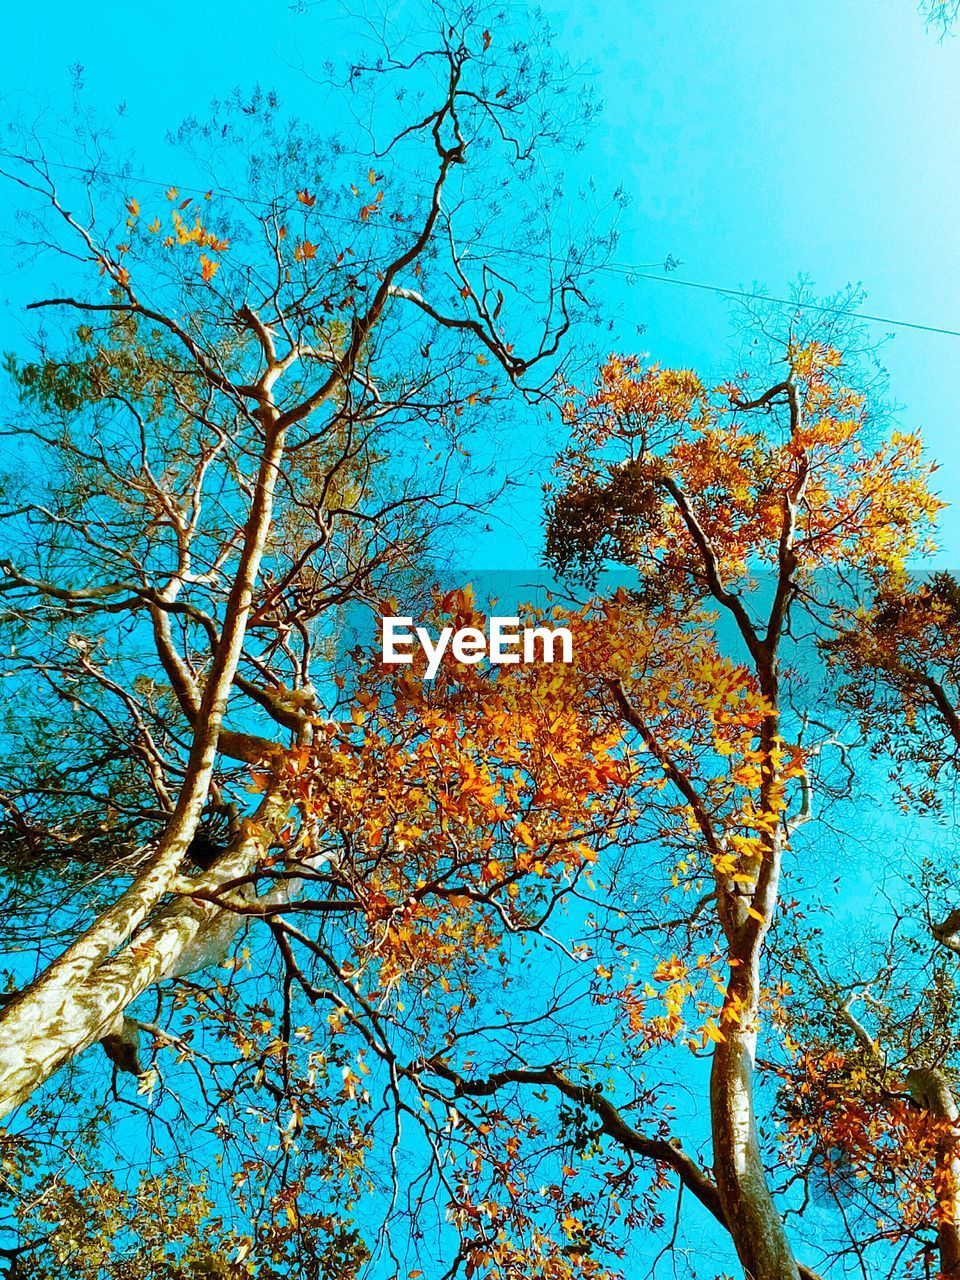 CLOSE-UP LOW ANGLE VIEW OF TREE AGAINST BLUE SKY